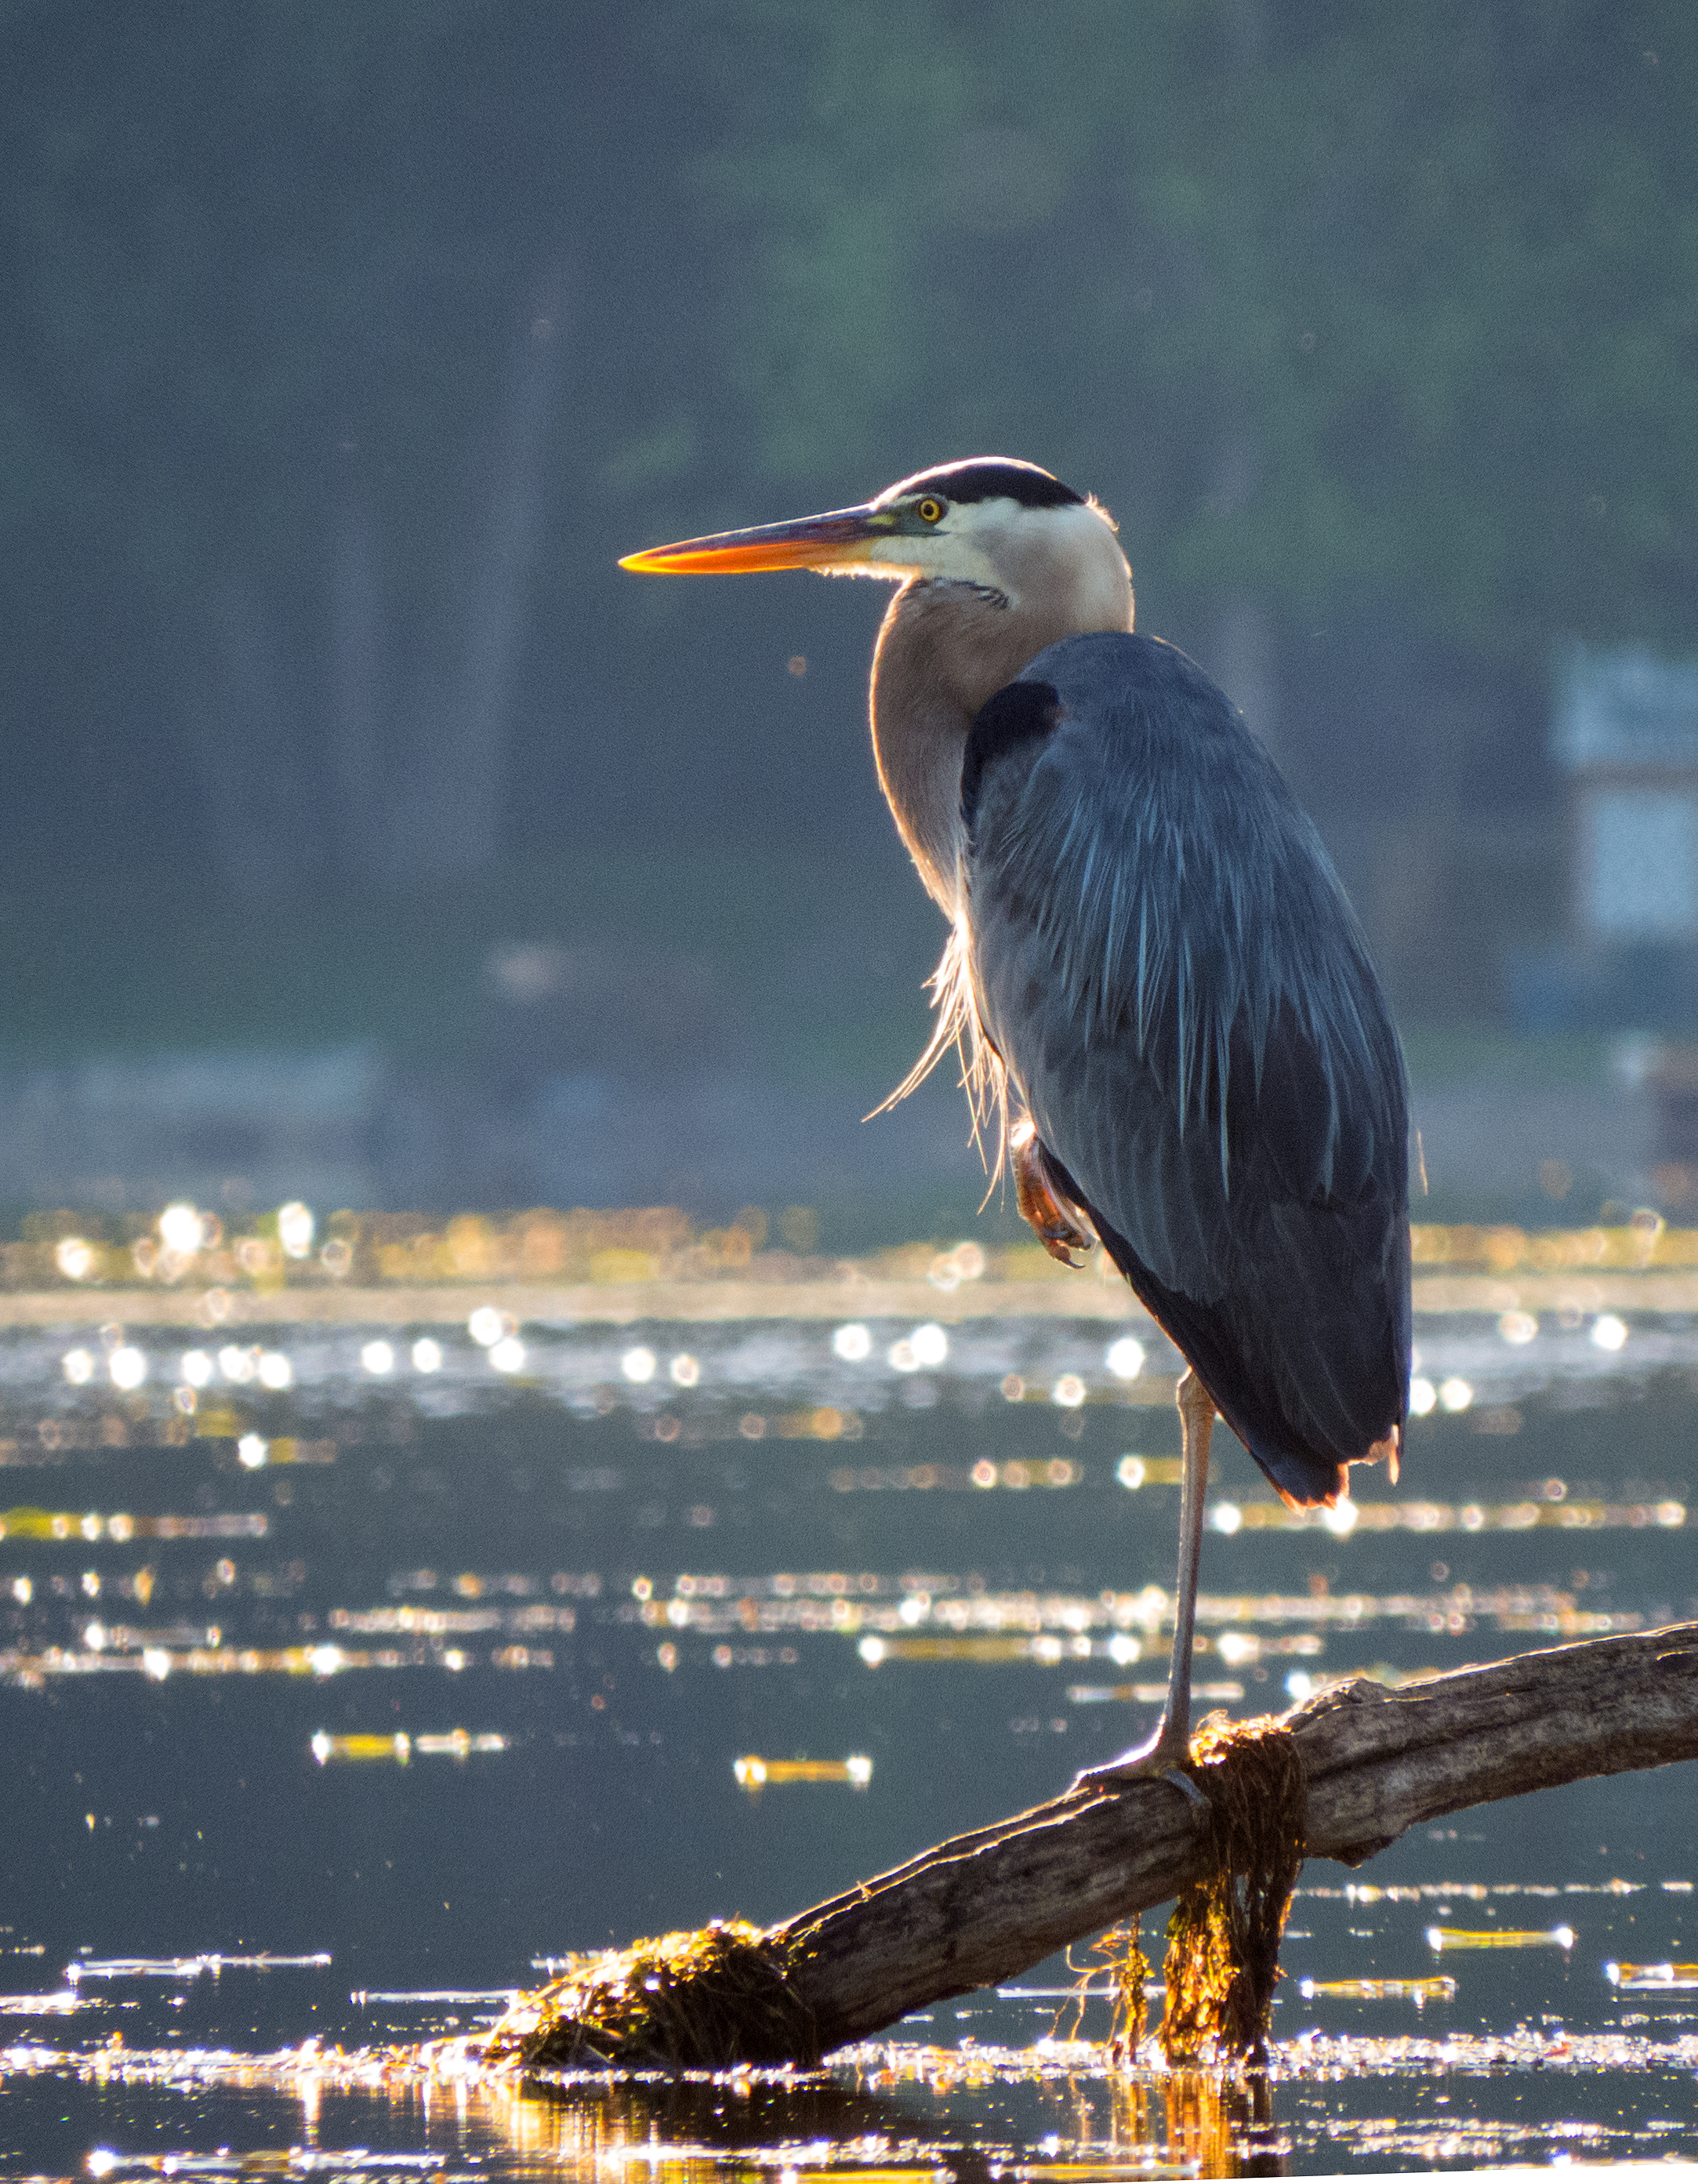 HM__Fred-Bertram-Great-Blue-Heron